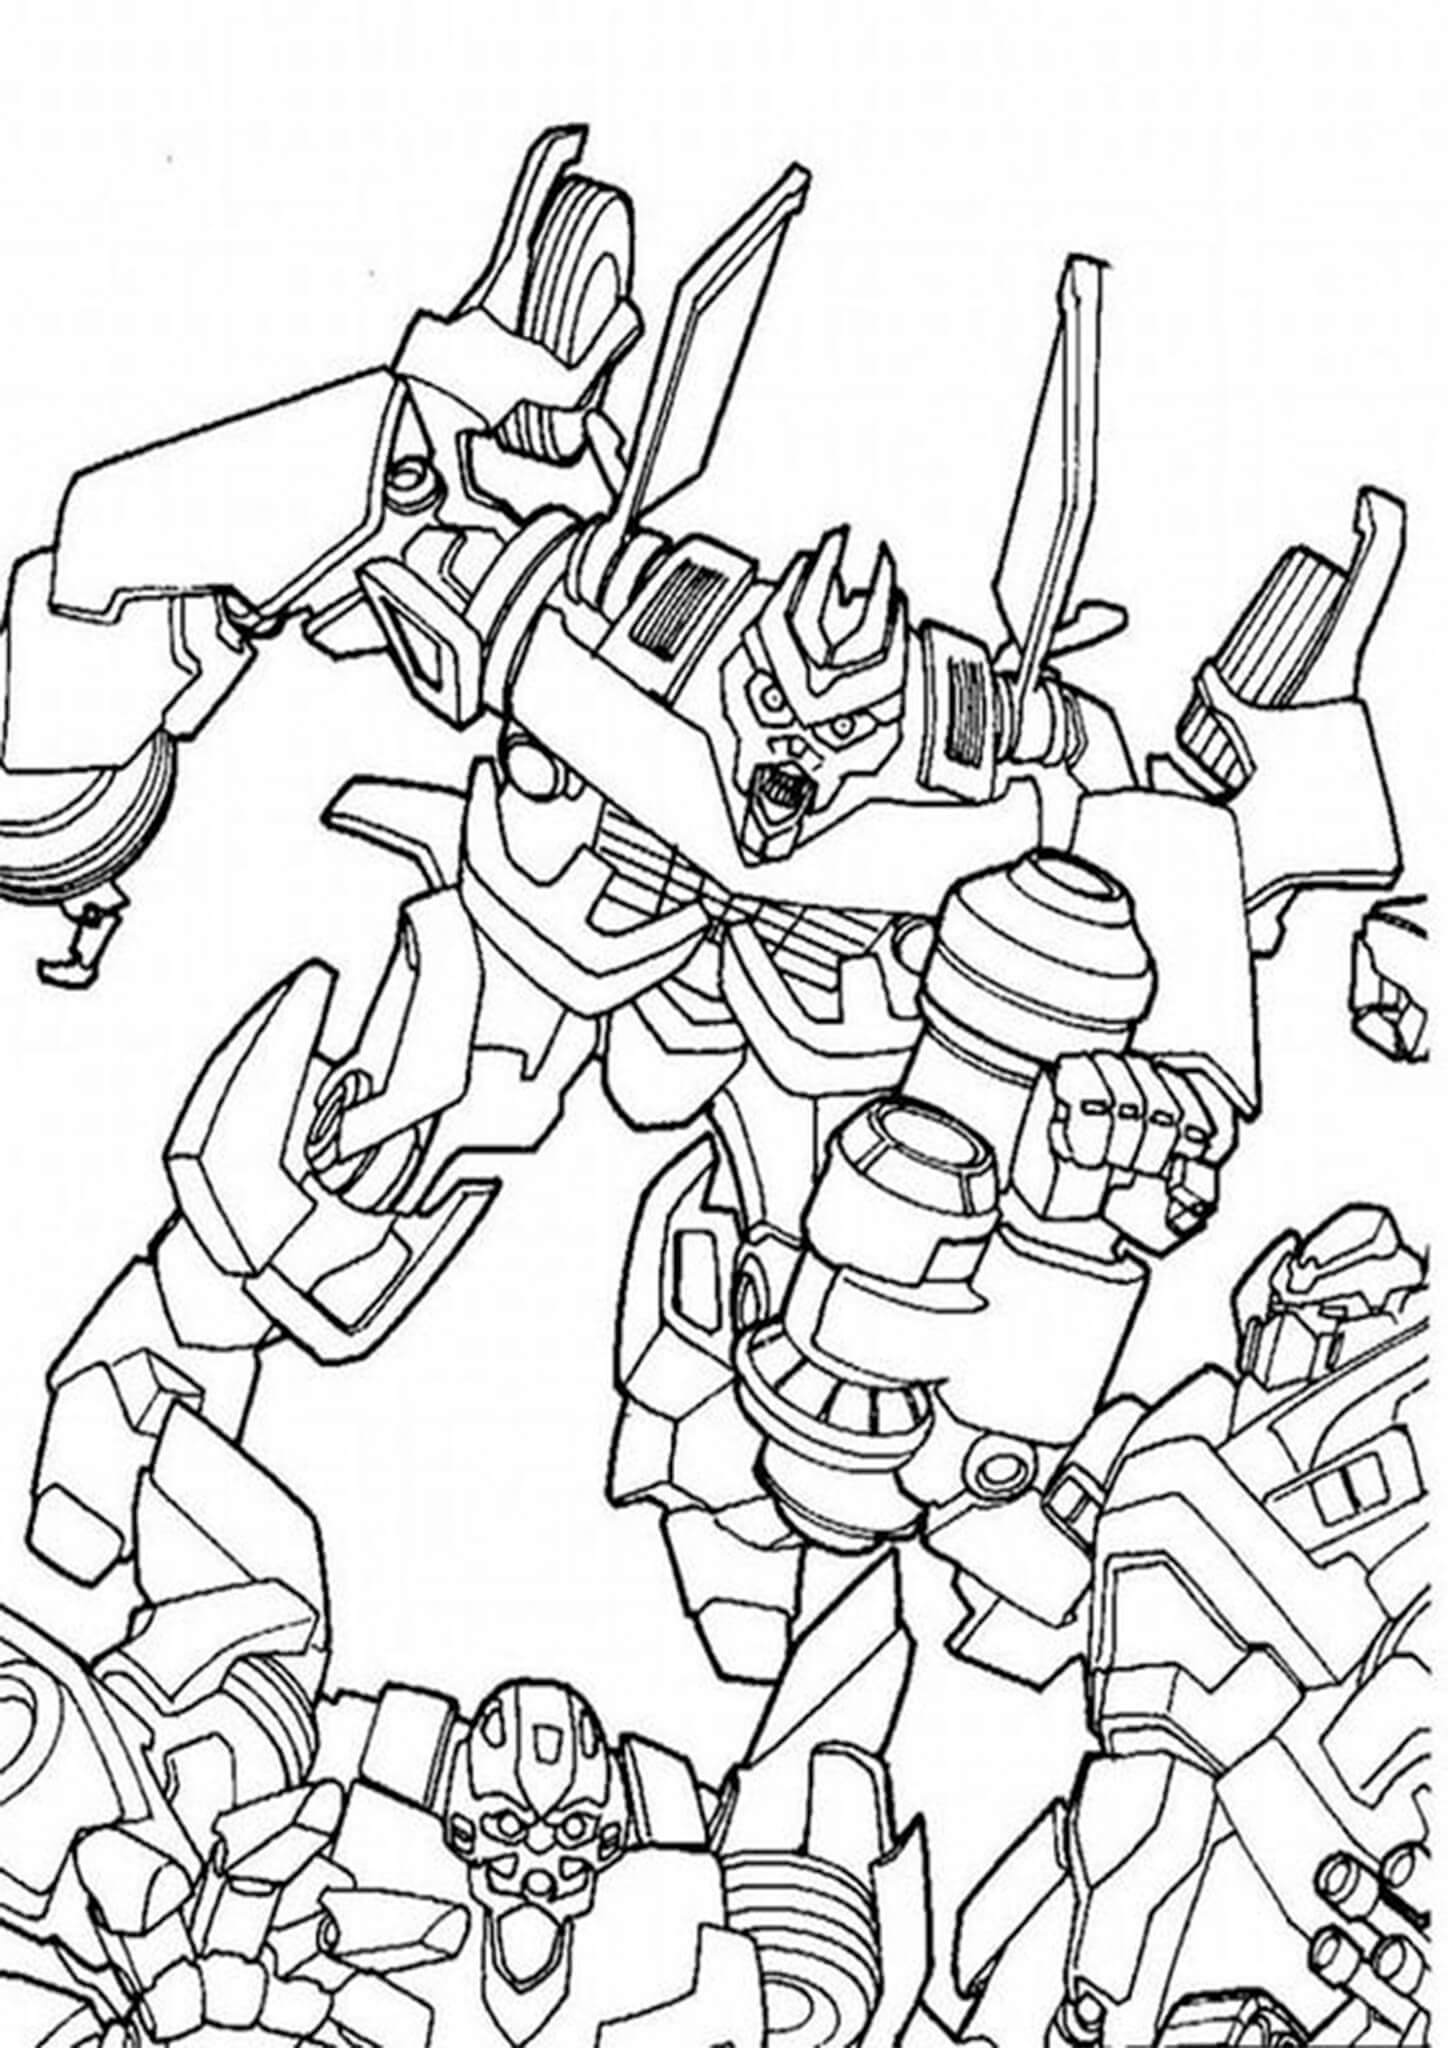 coloring transformers transformers coloring pages characters 101 coloring coloring transformers